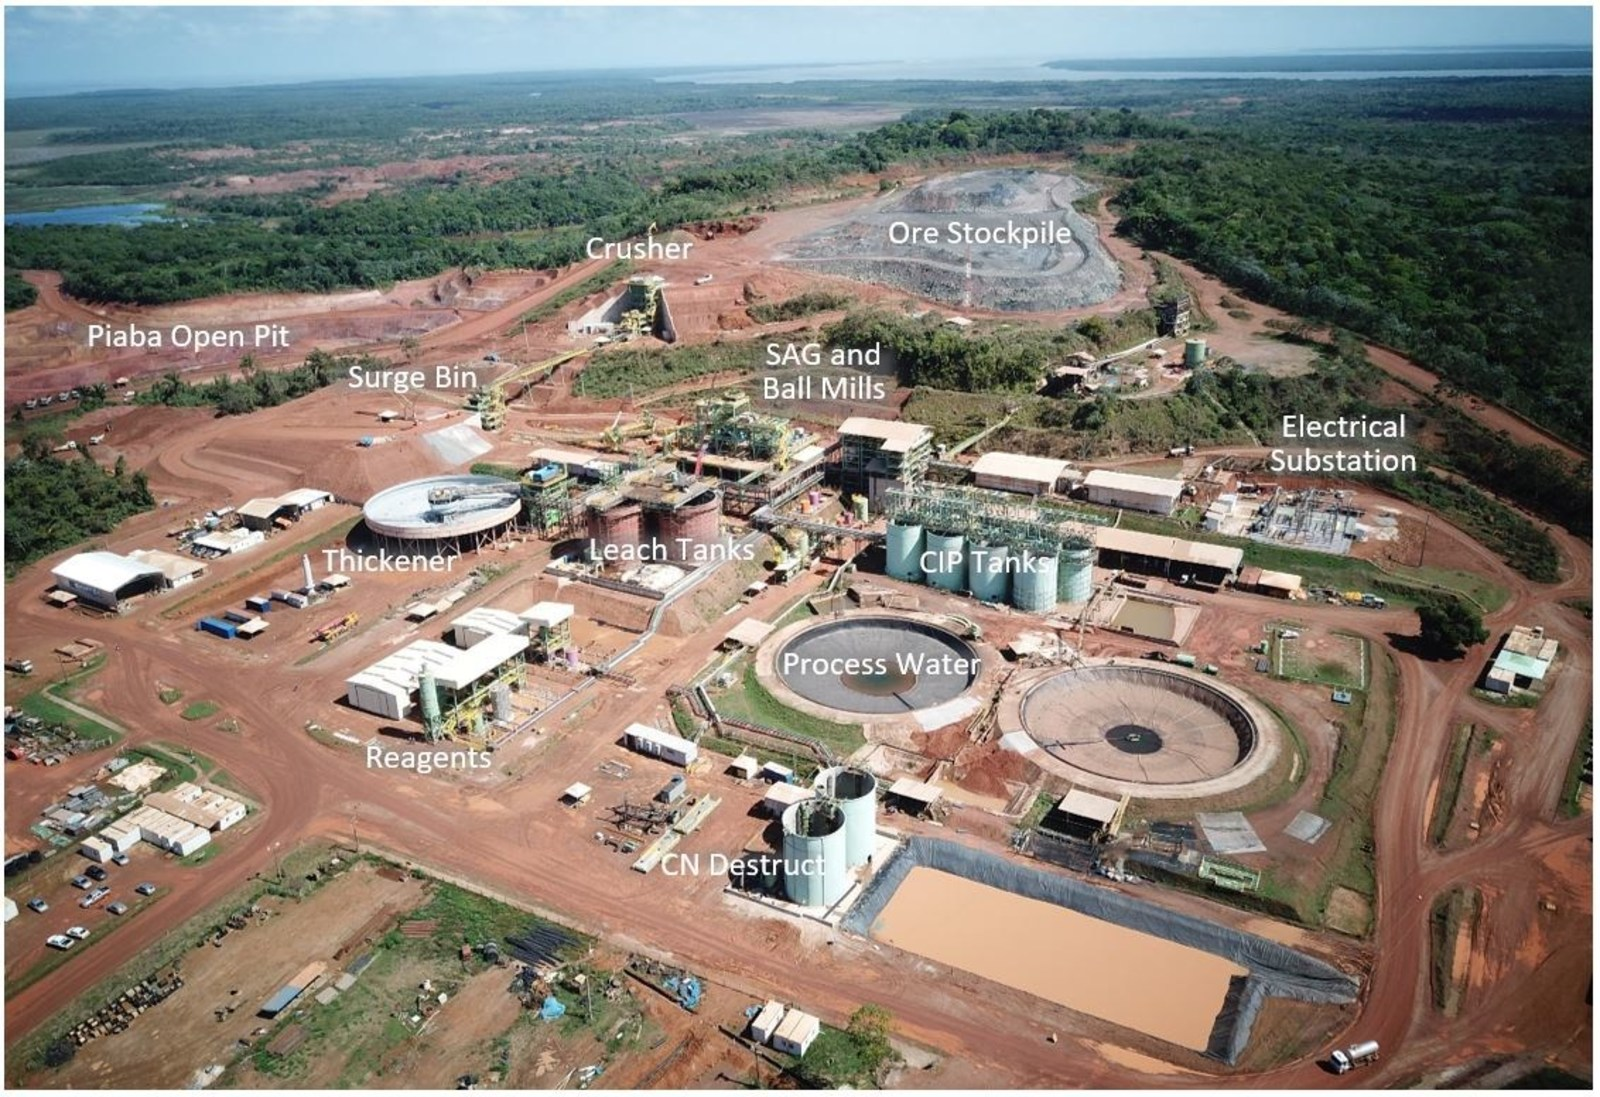 Aerial view of Aurizona plant and and ore stockpile